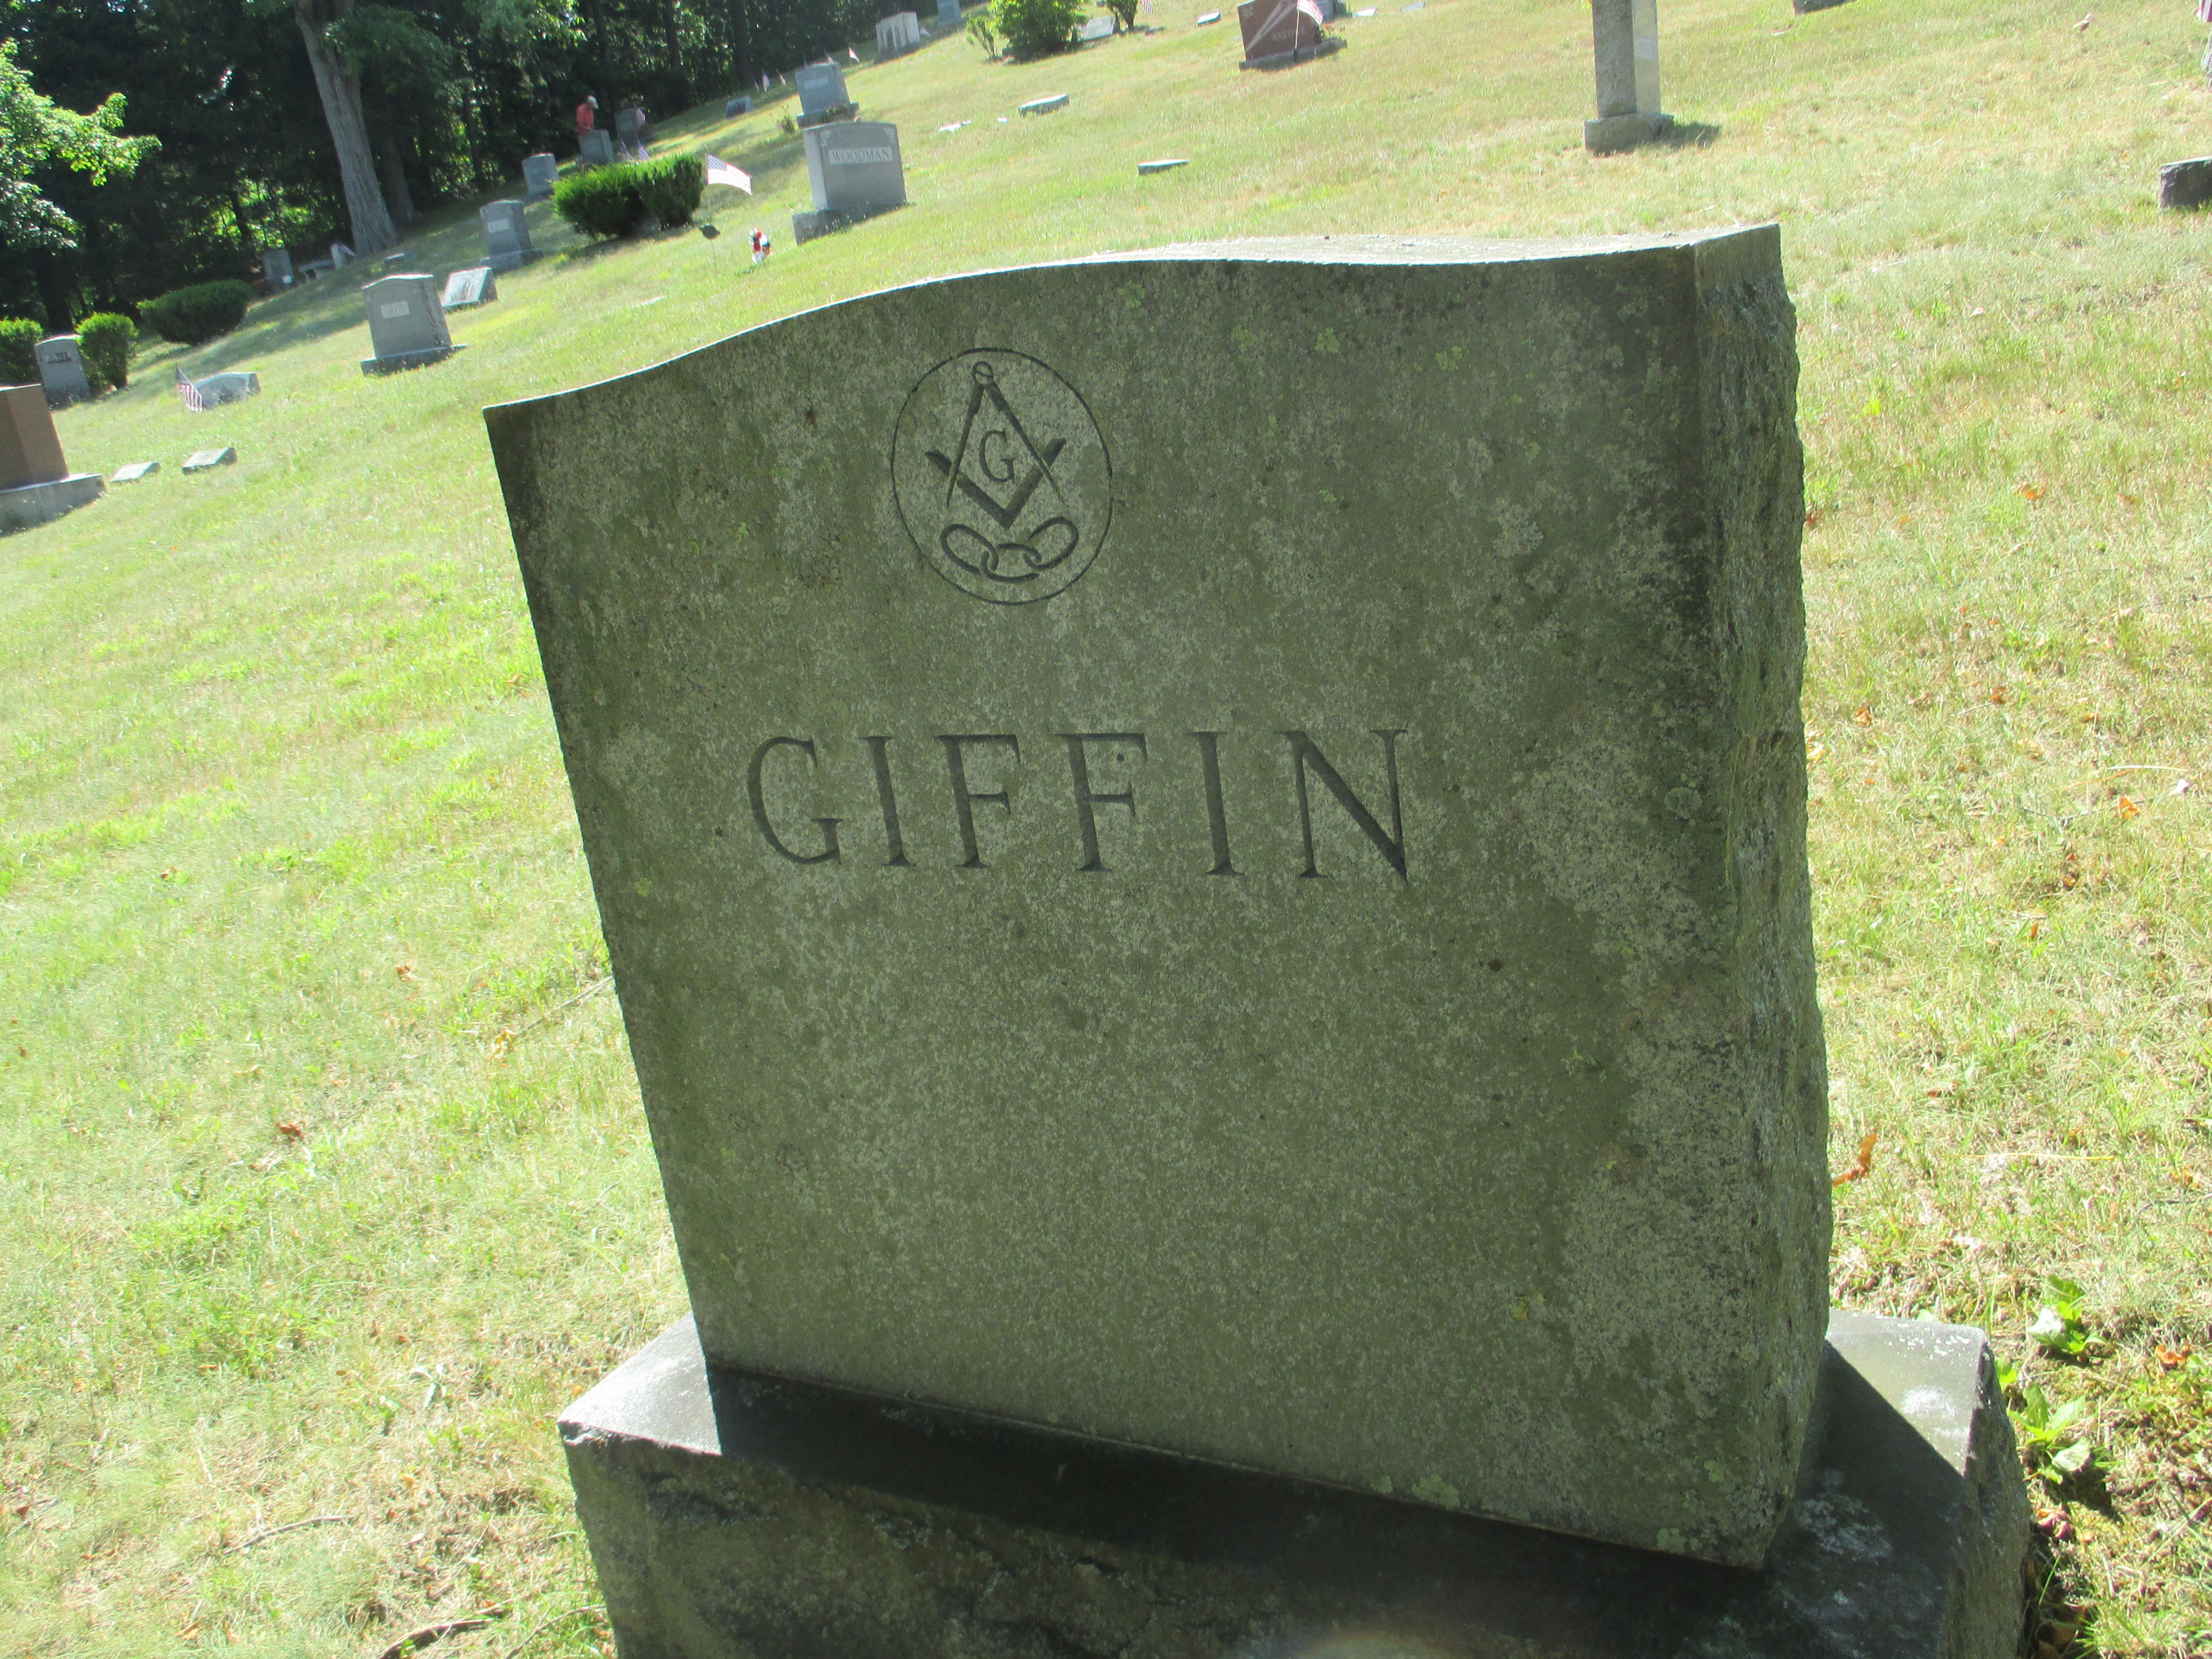 Gertrude S. Giffin